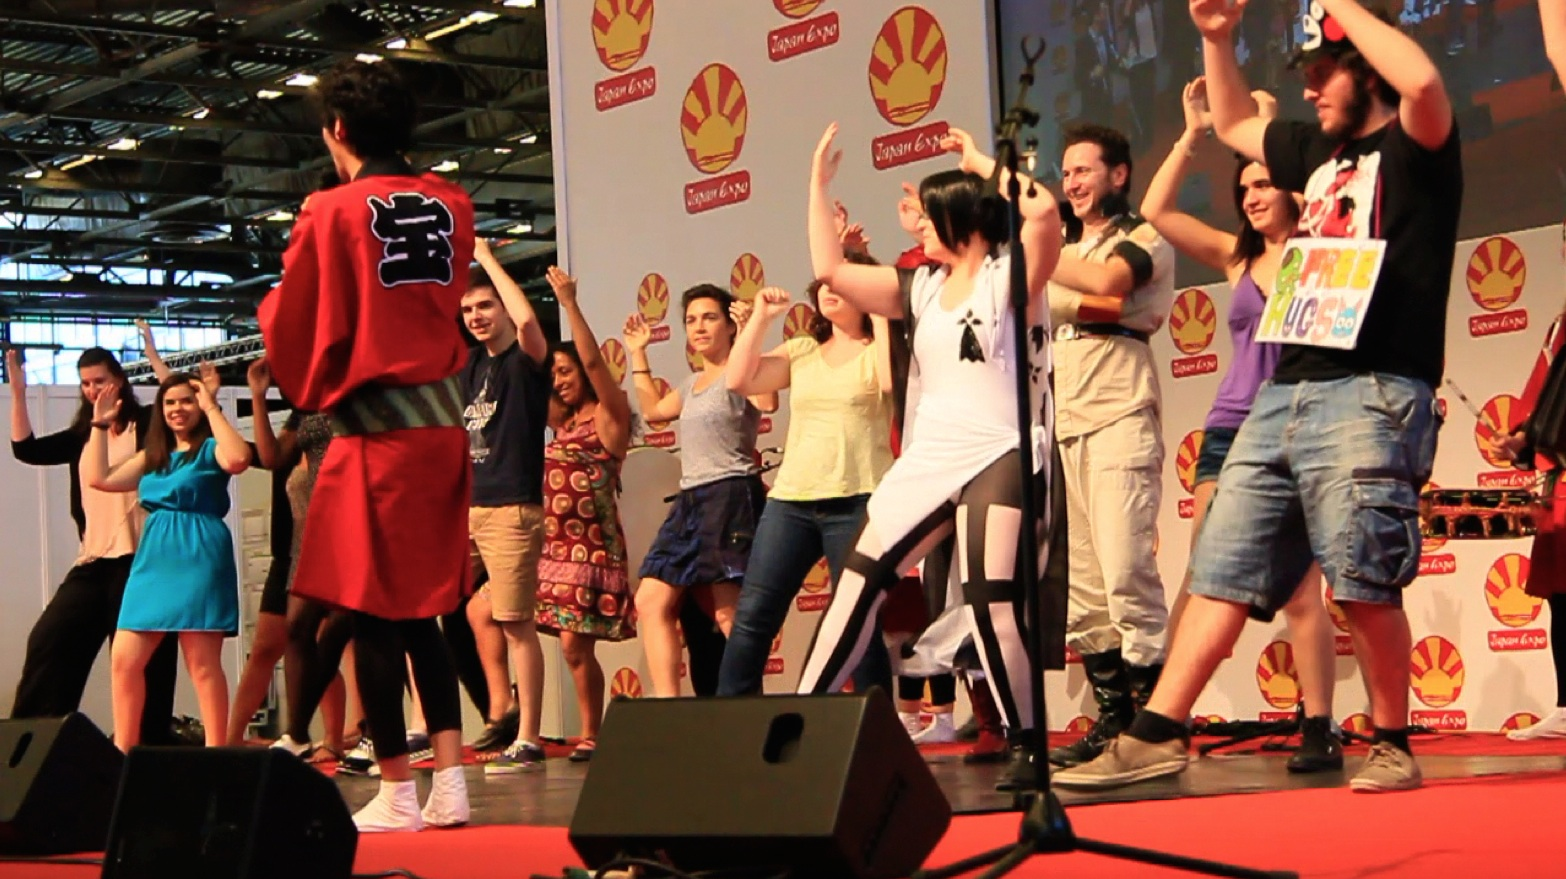 H.S.1 – Japan Expo 2014